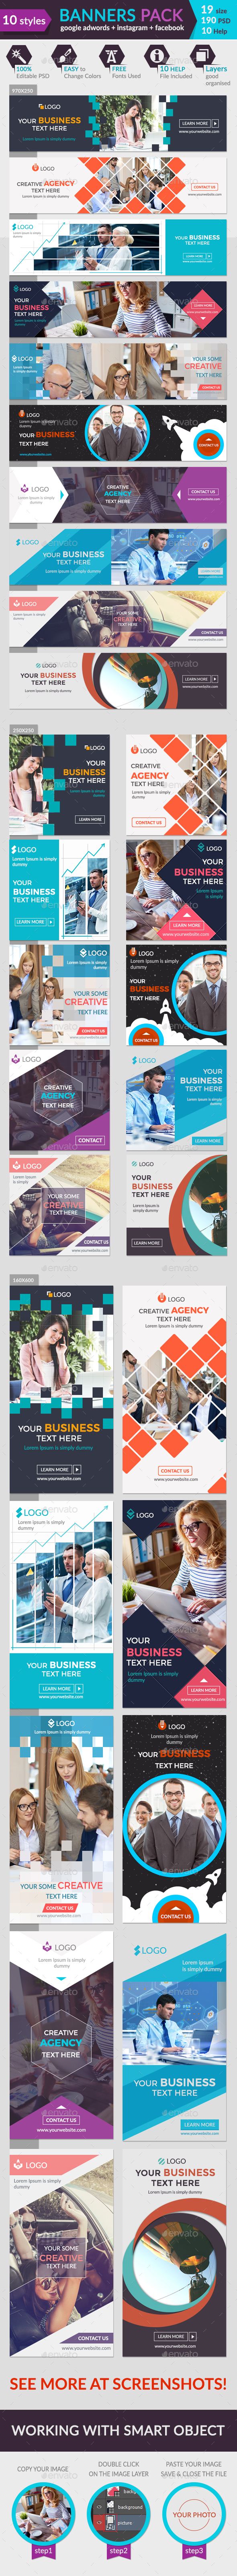 Banners Pack-1 - Banners & Ads Web Elements